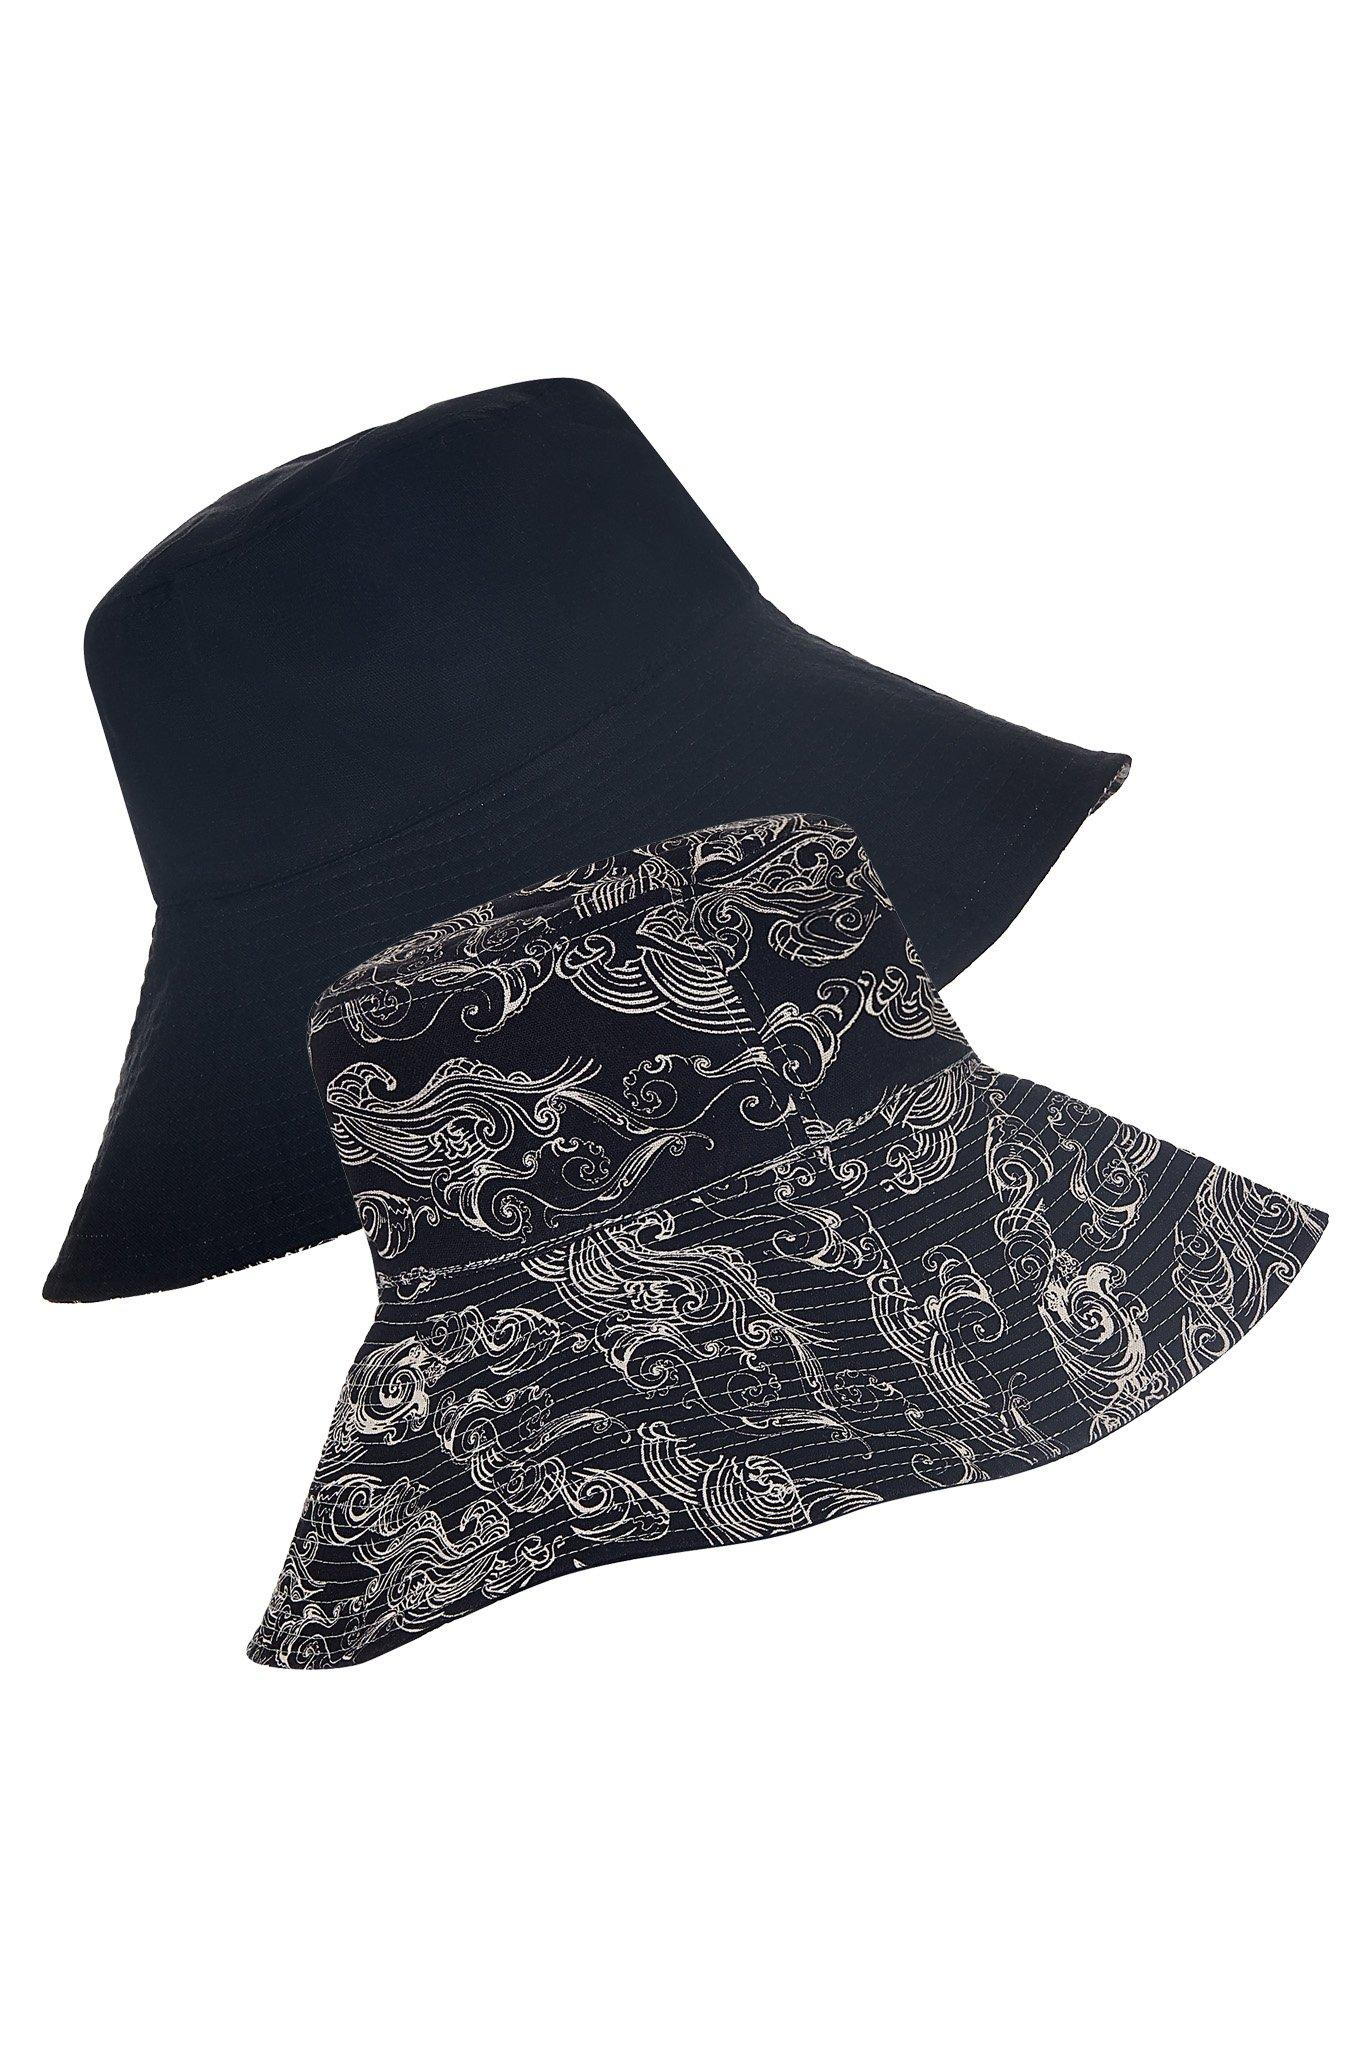 COCO REVERSIBLE Hat Uluwatu Black - Komodo Fashion